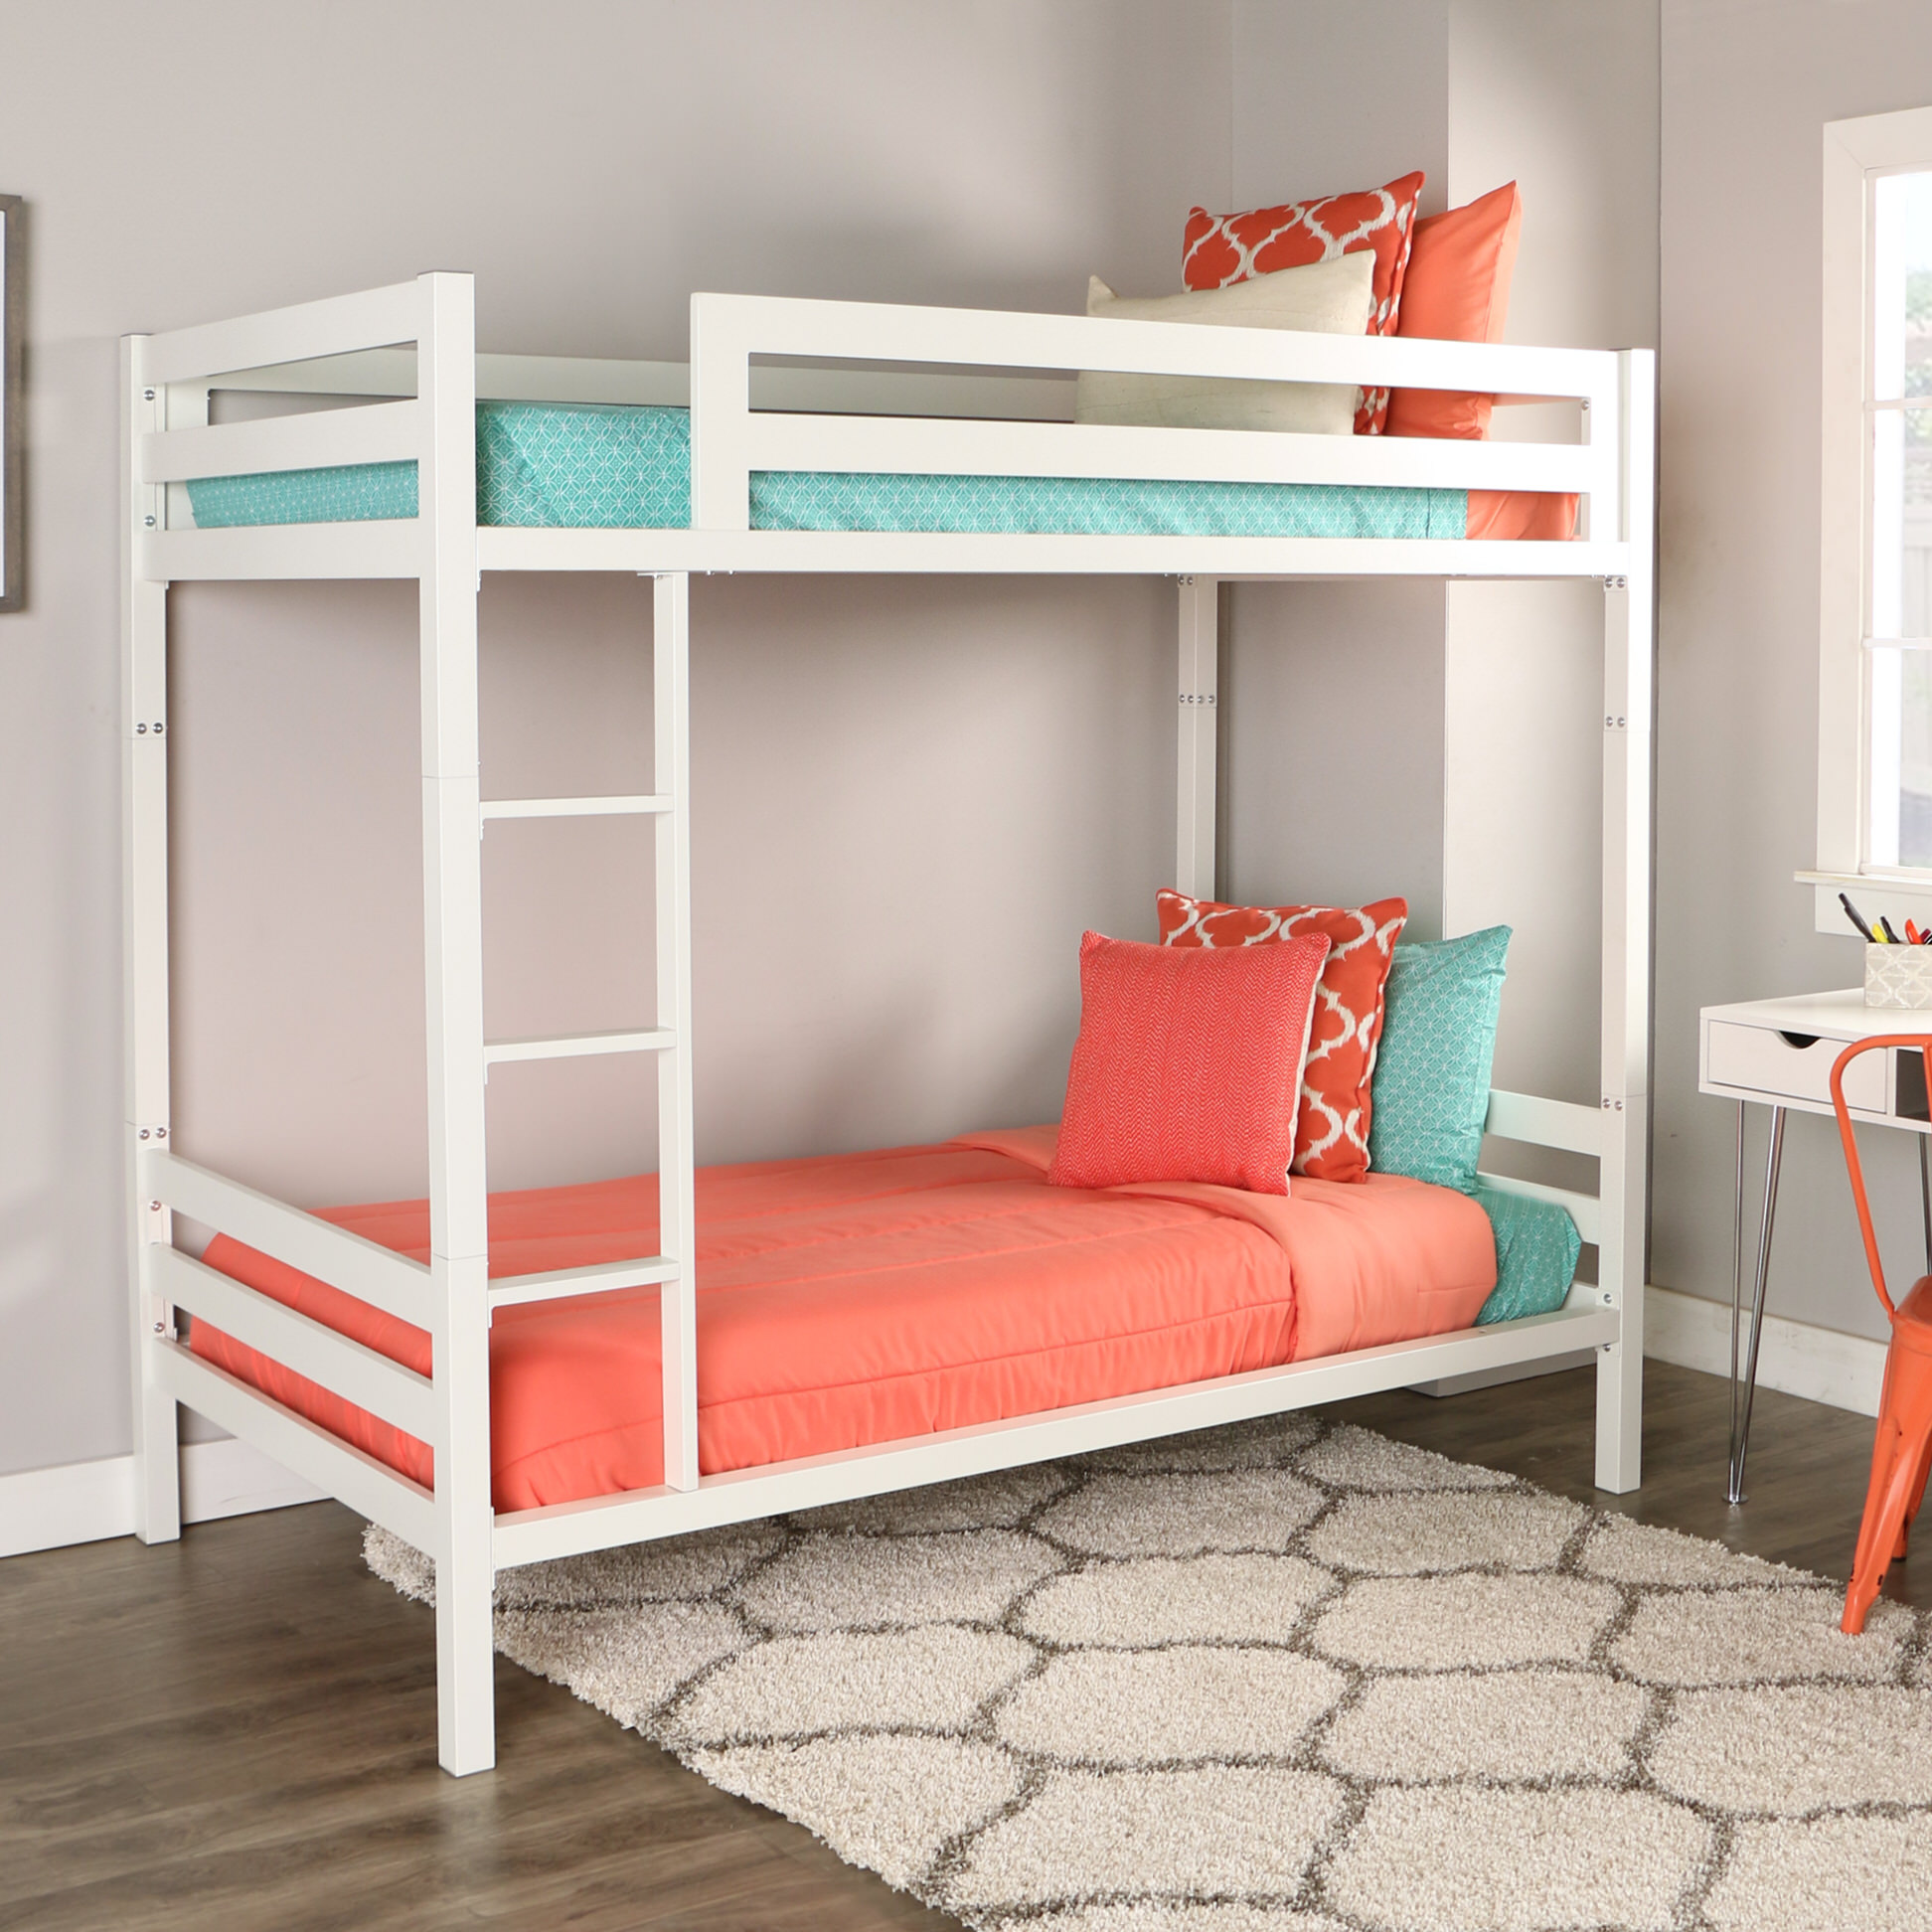 Fullsize Of White Bunk Beds